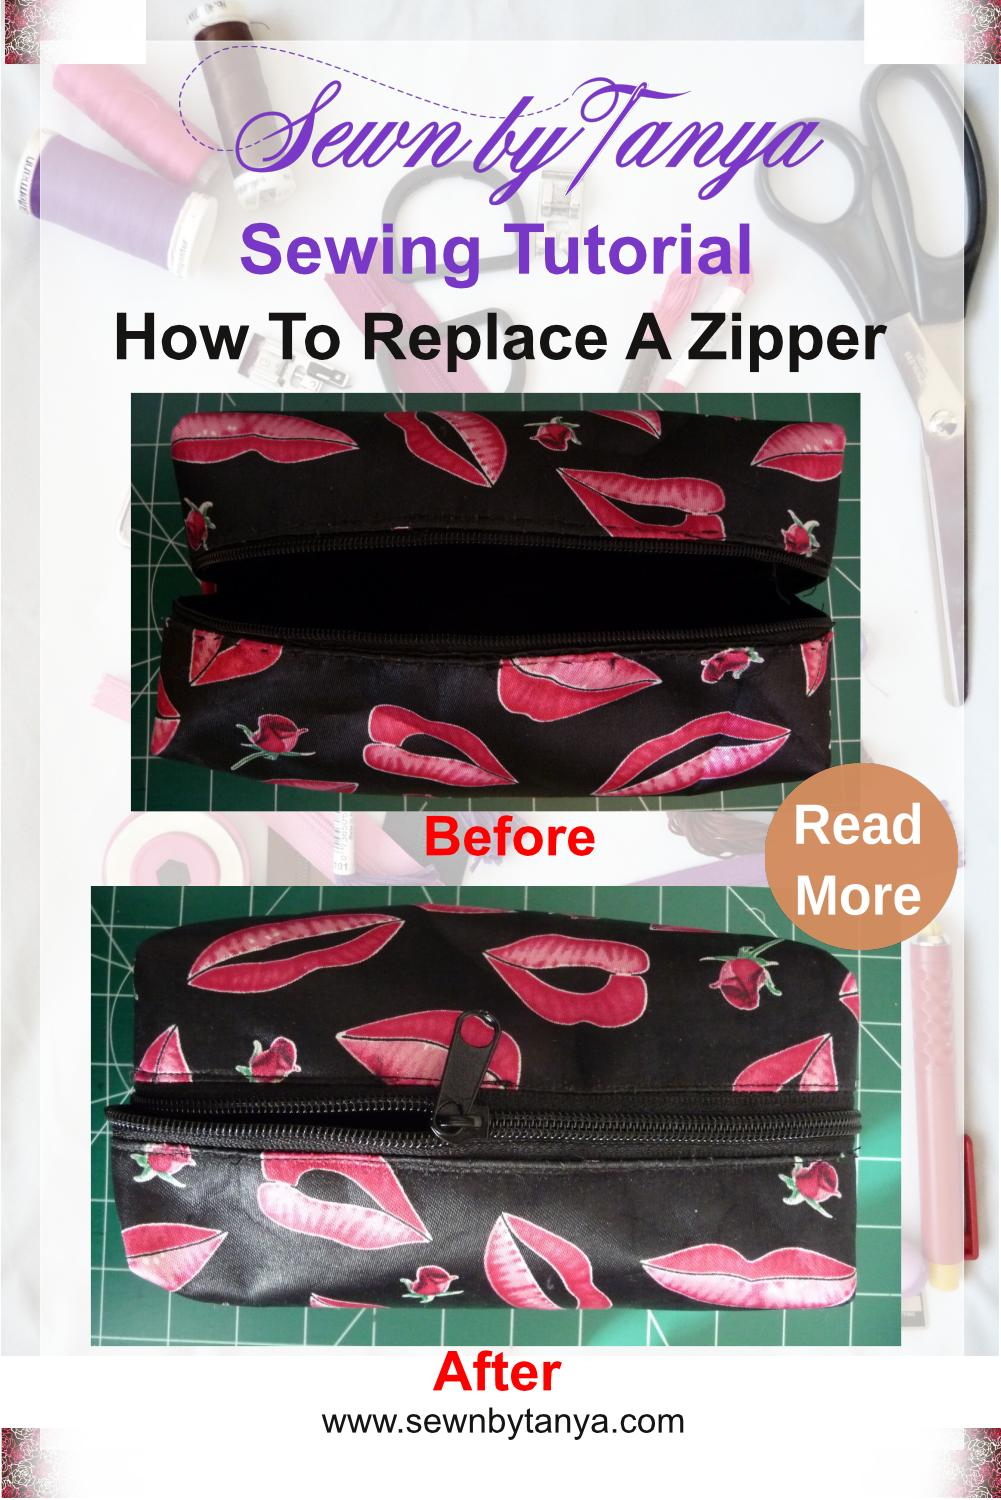 """Pinterest Image for """"Sewn by Tanya Sewing Tutorial: How to Replace A Zipper"""" with before and after photos"""